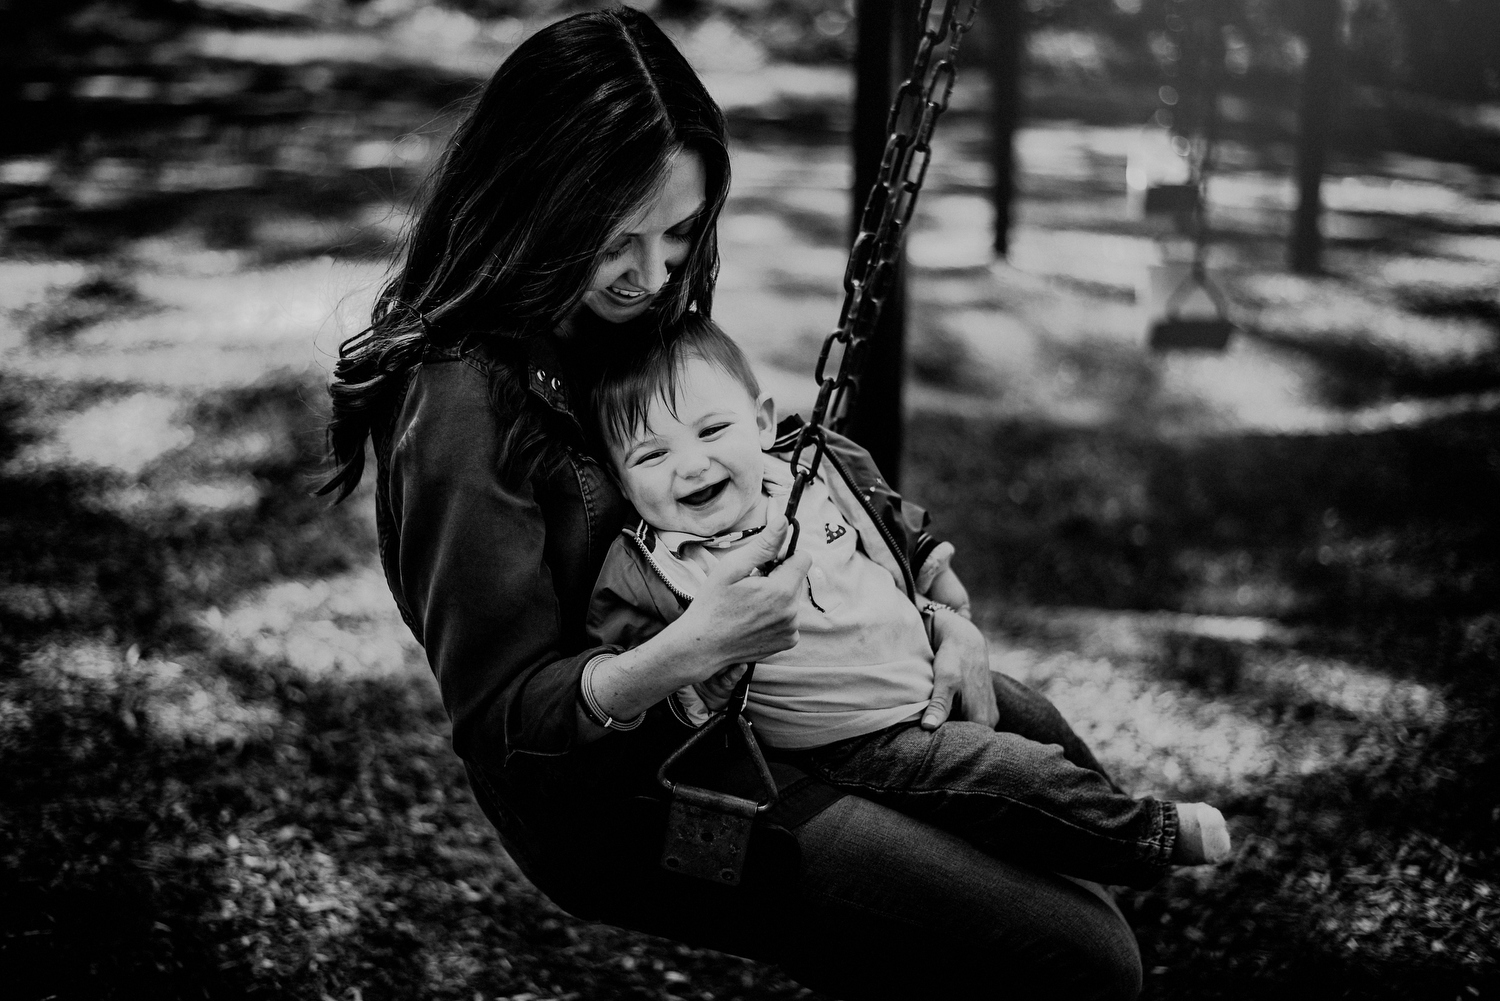 moment between mom and son on swingset in black and white photograph